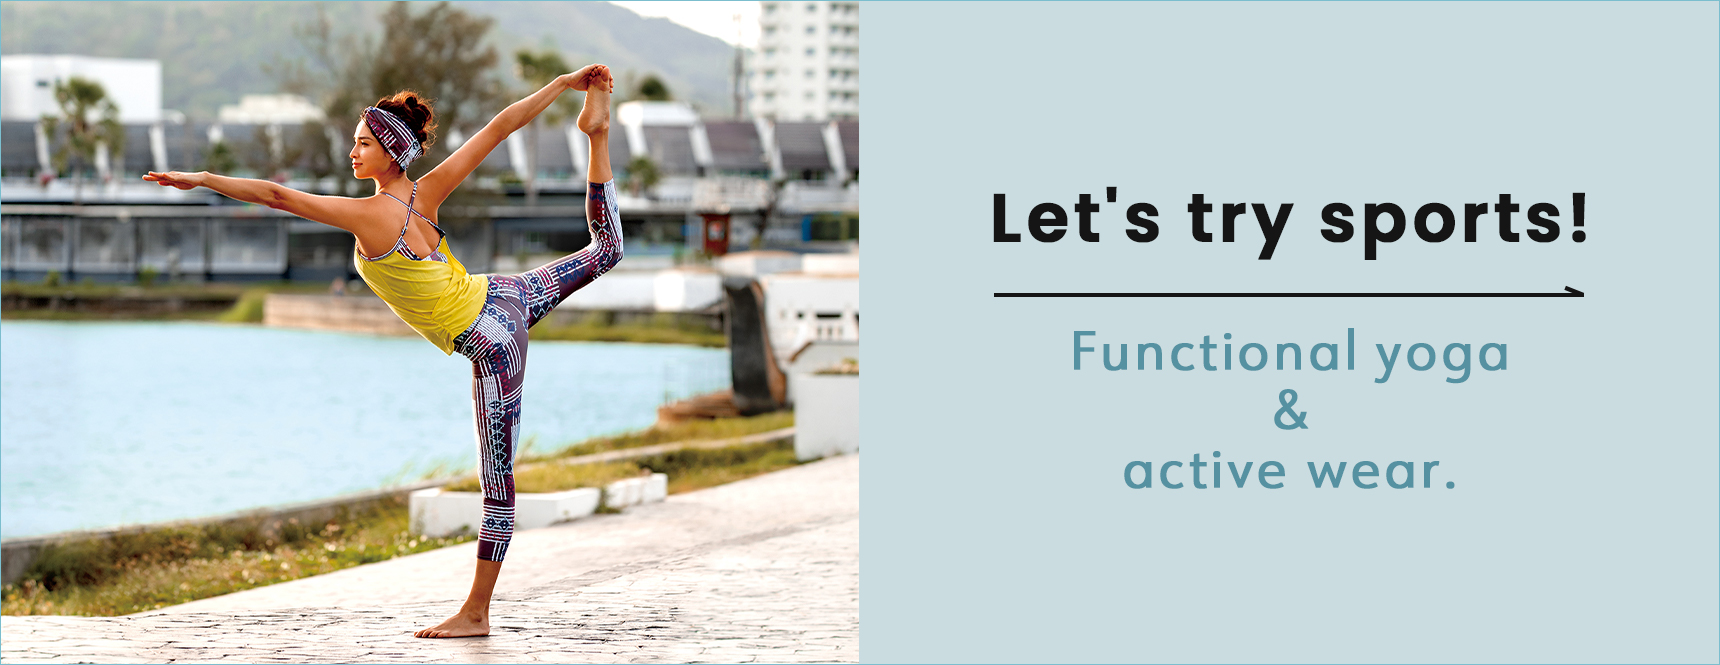 Let's try sports!Functional yoga & active wear.